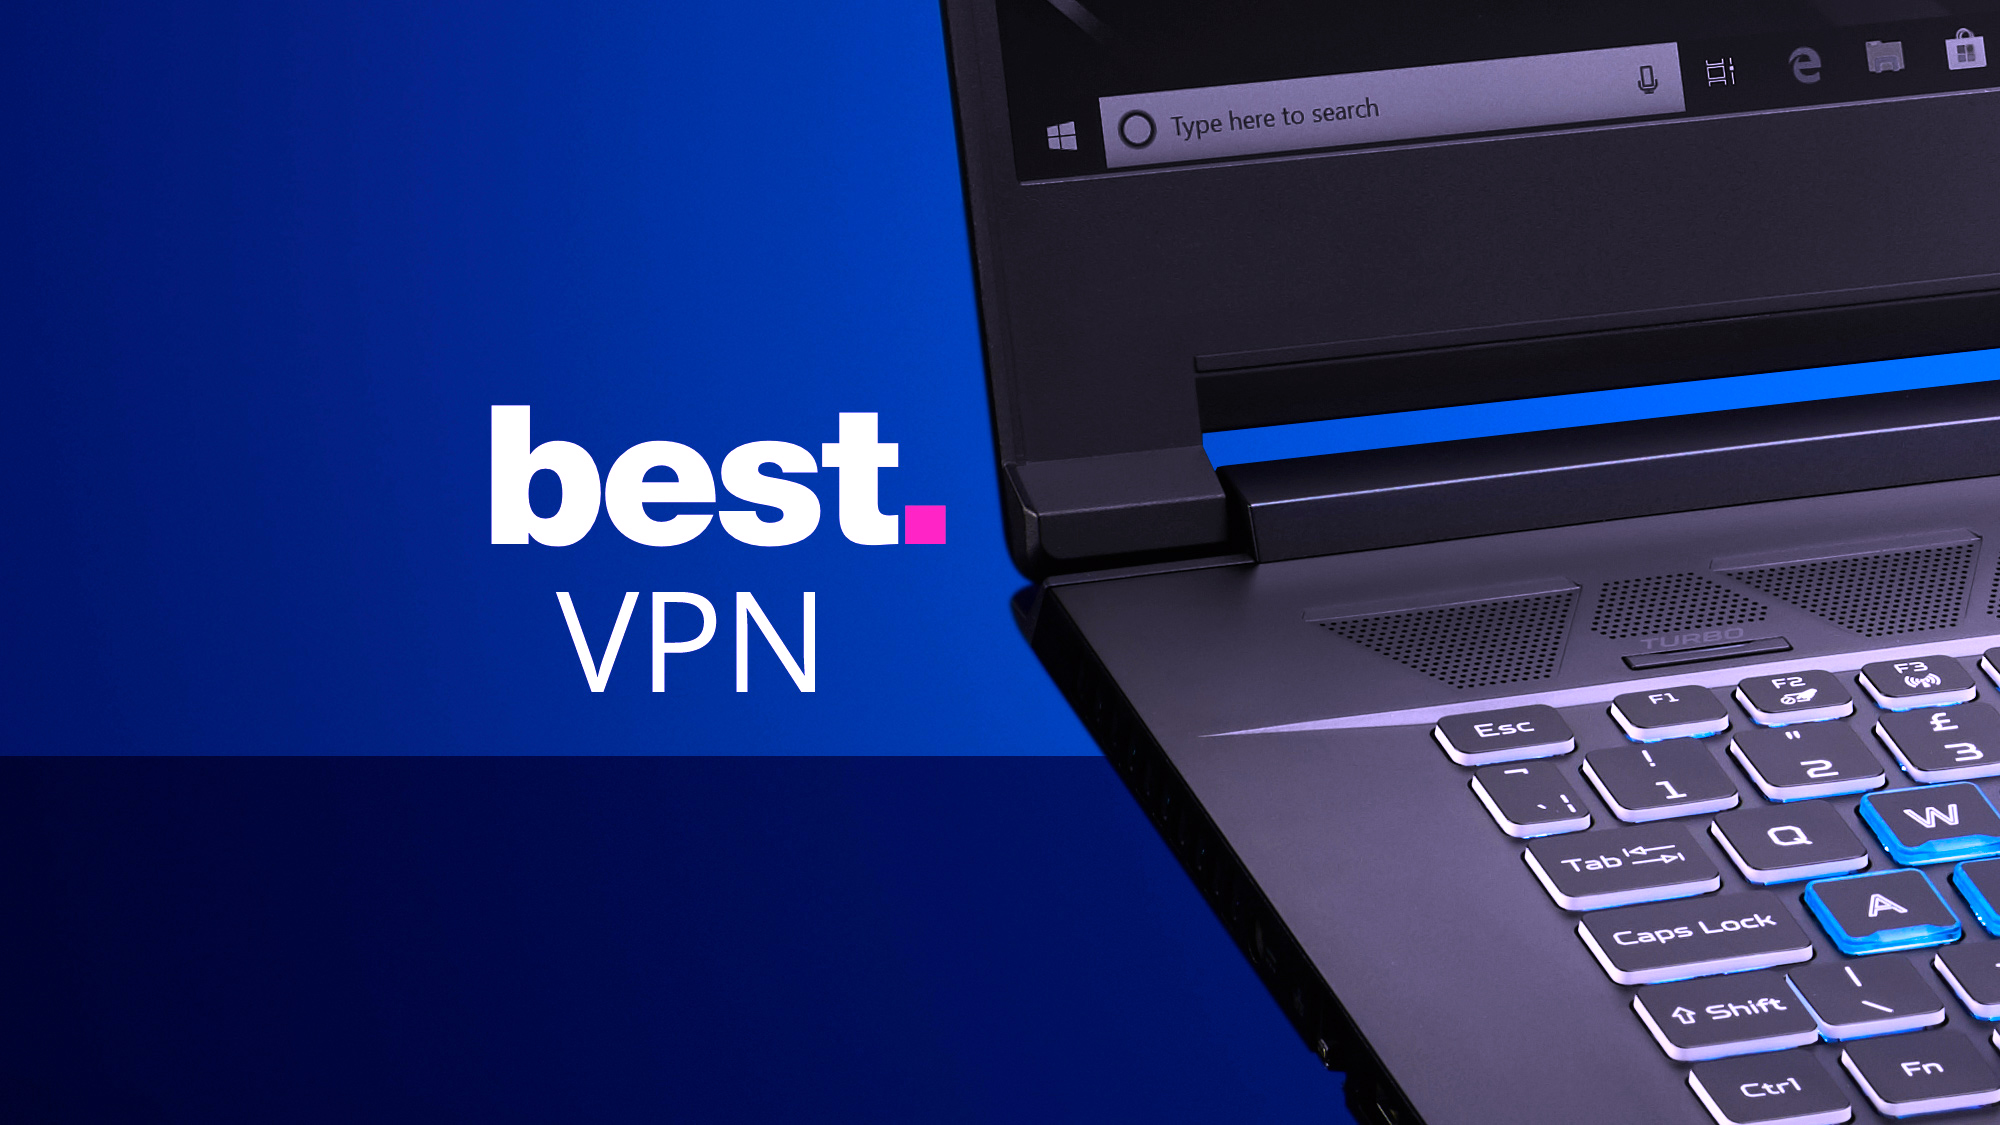 The best VPN service on the internet in 2021